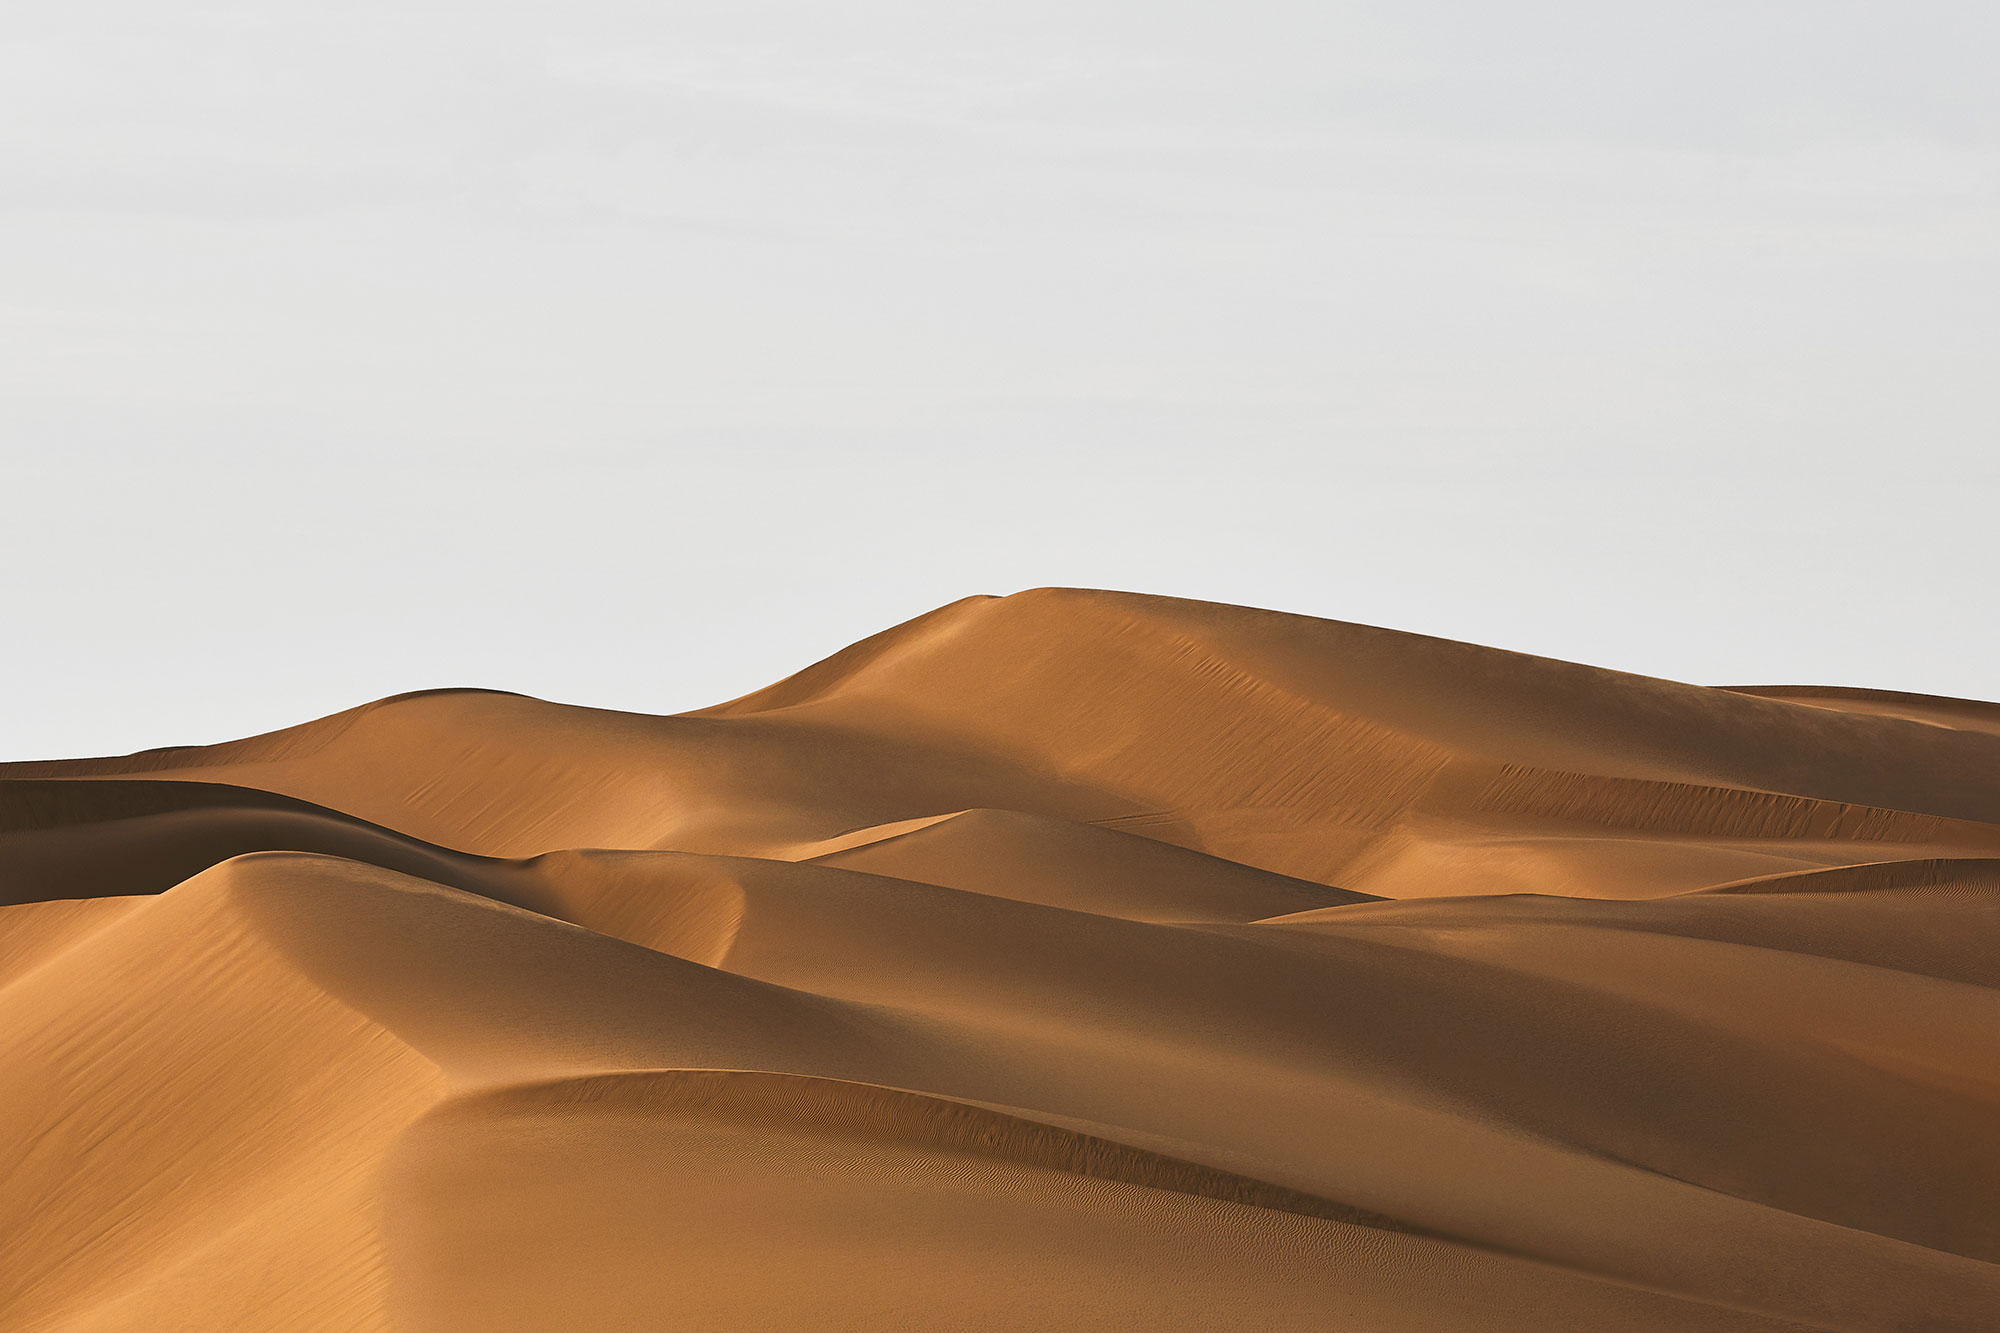 Imperial Sand Dunes -  Stephen Denton Photography, Los Angeles, California based interior & hospitality photographer